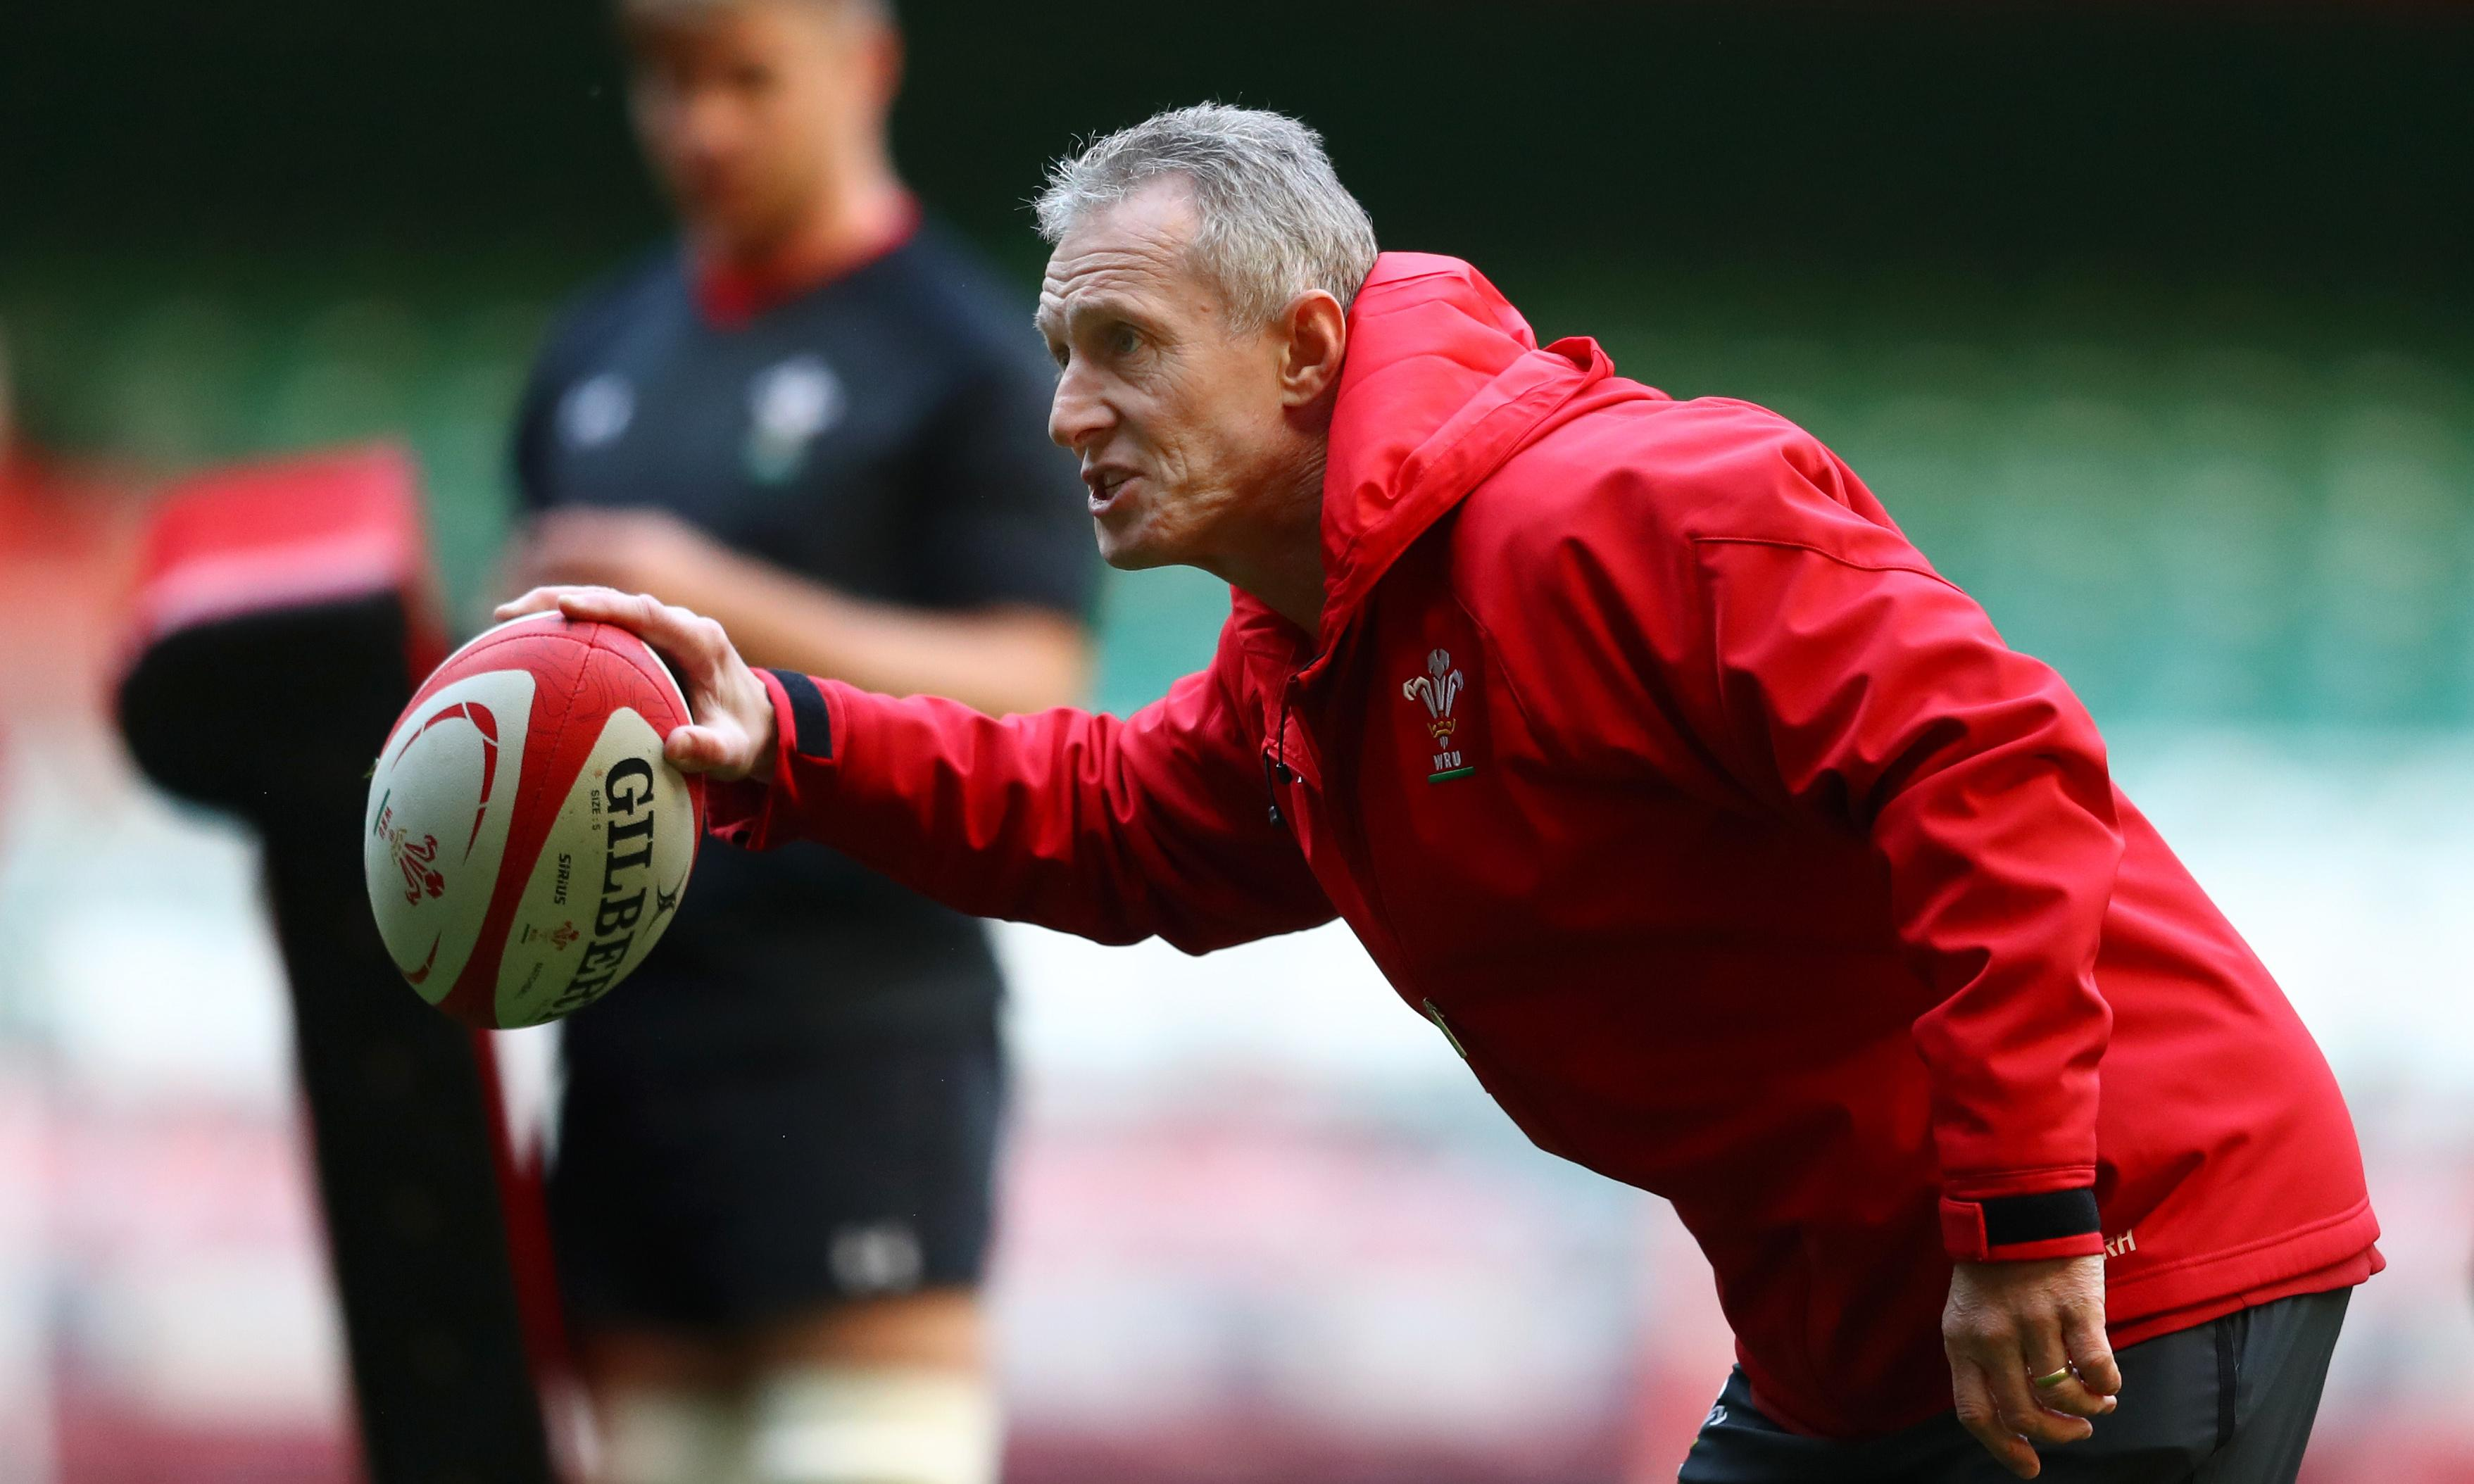 Rob Howley faces uncertain future with long wait for betting verdict